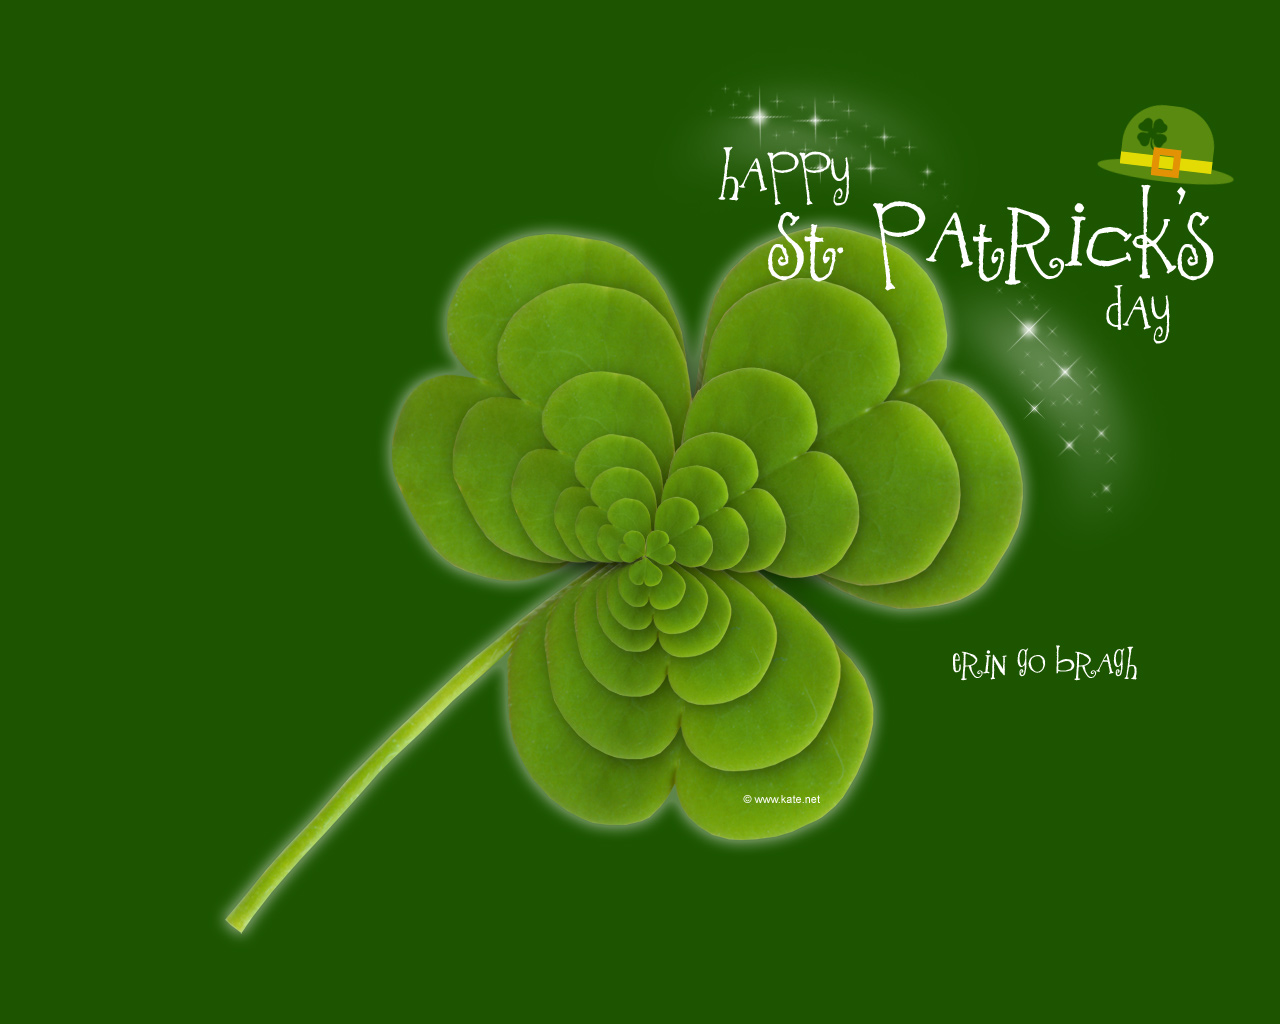 St Patricks Day Wallpapers By Kate